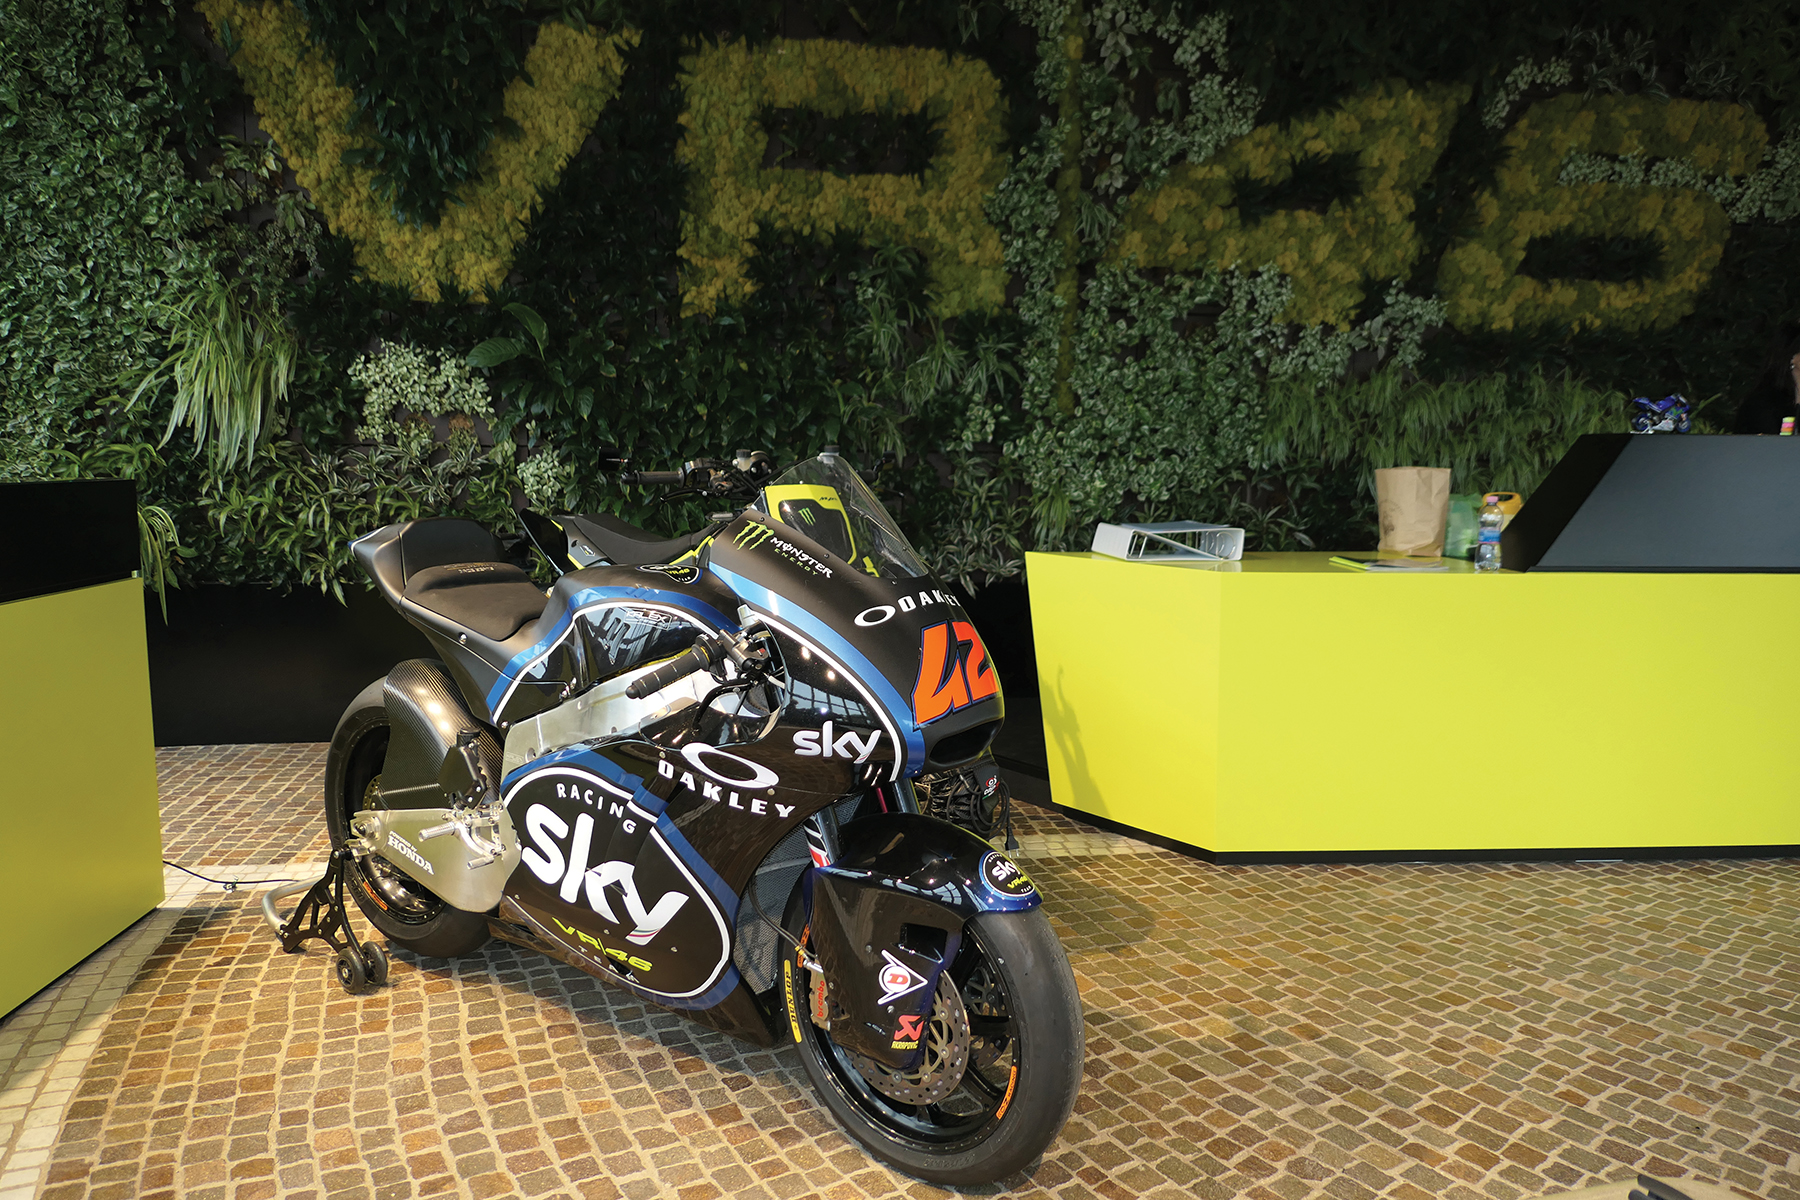 VR46 HQ reception Oxley photo